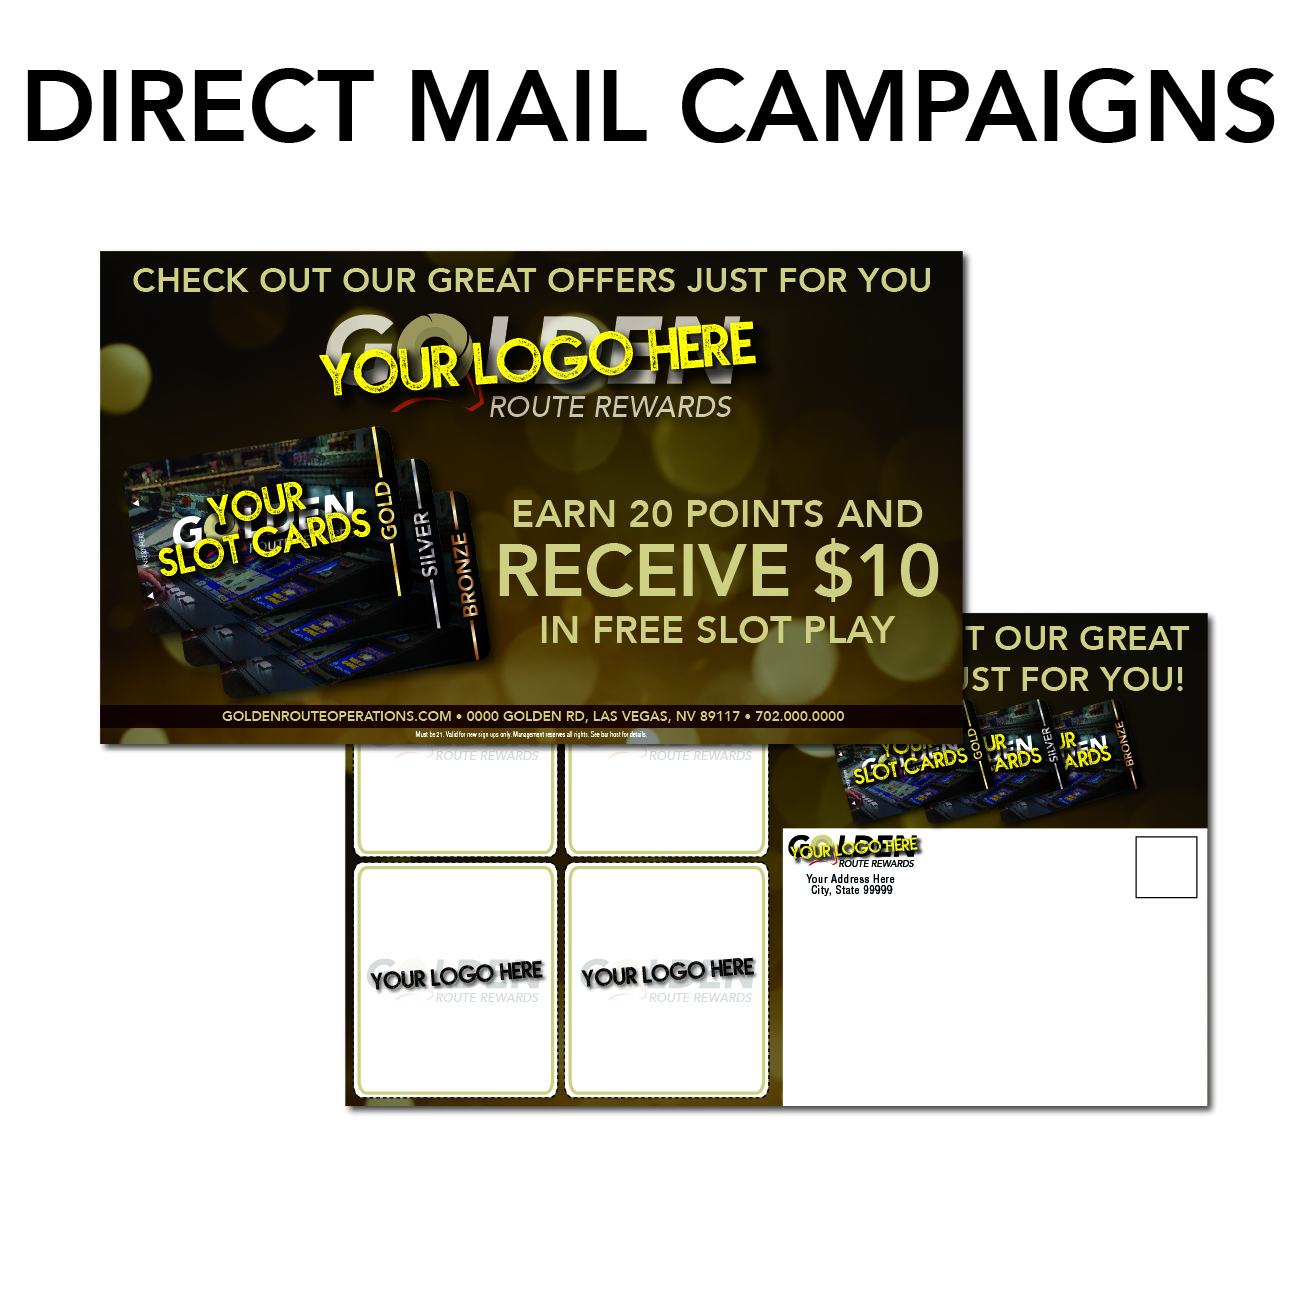 gro route rewards marketing needs direct mail campaigns